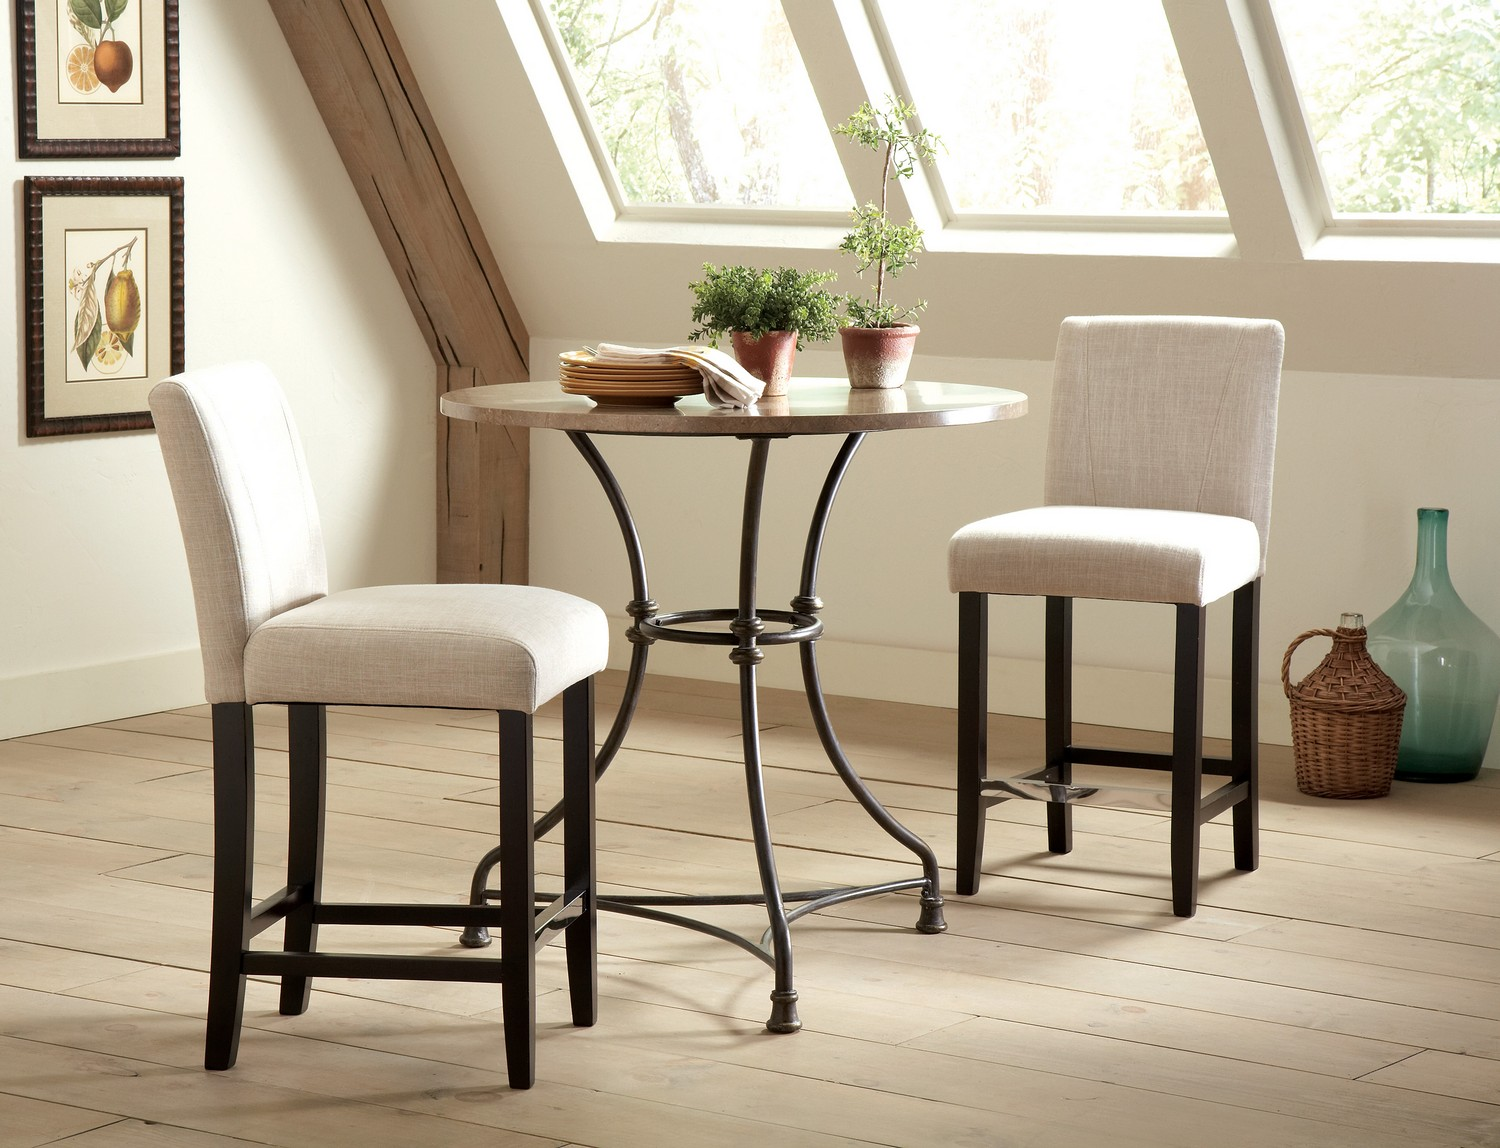 Coaster Lahner Round Counter Height Dining Set - Black Base